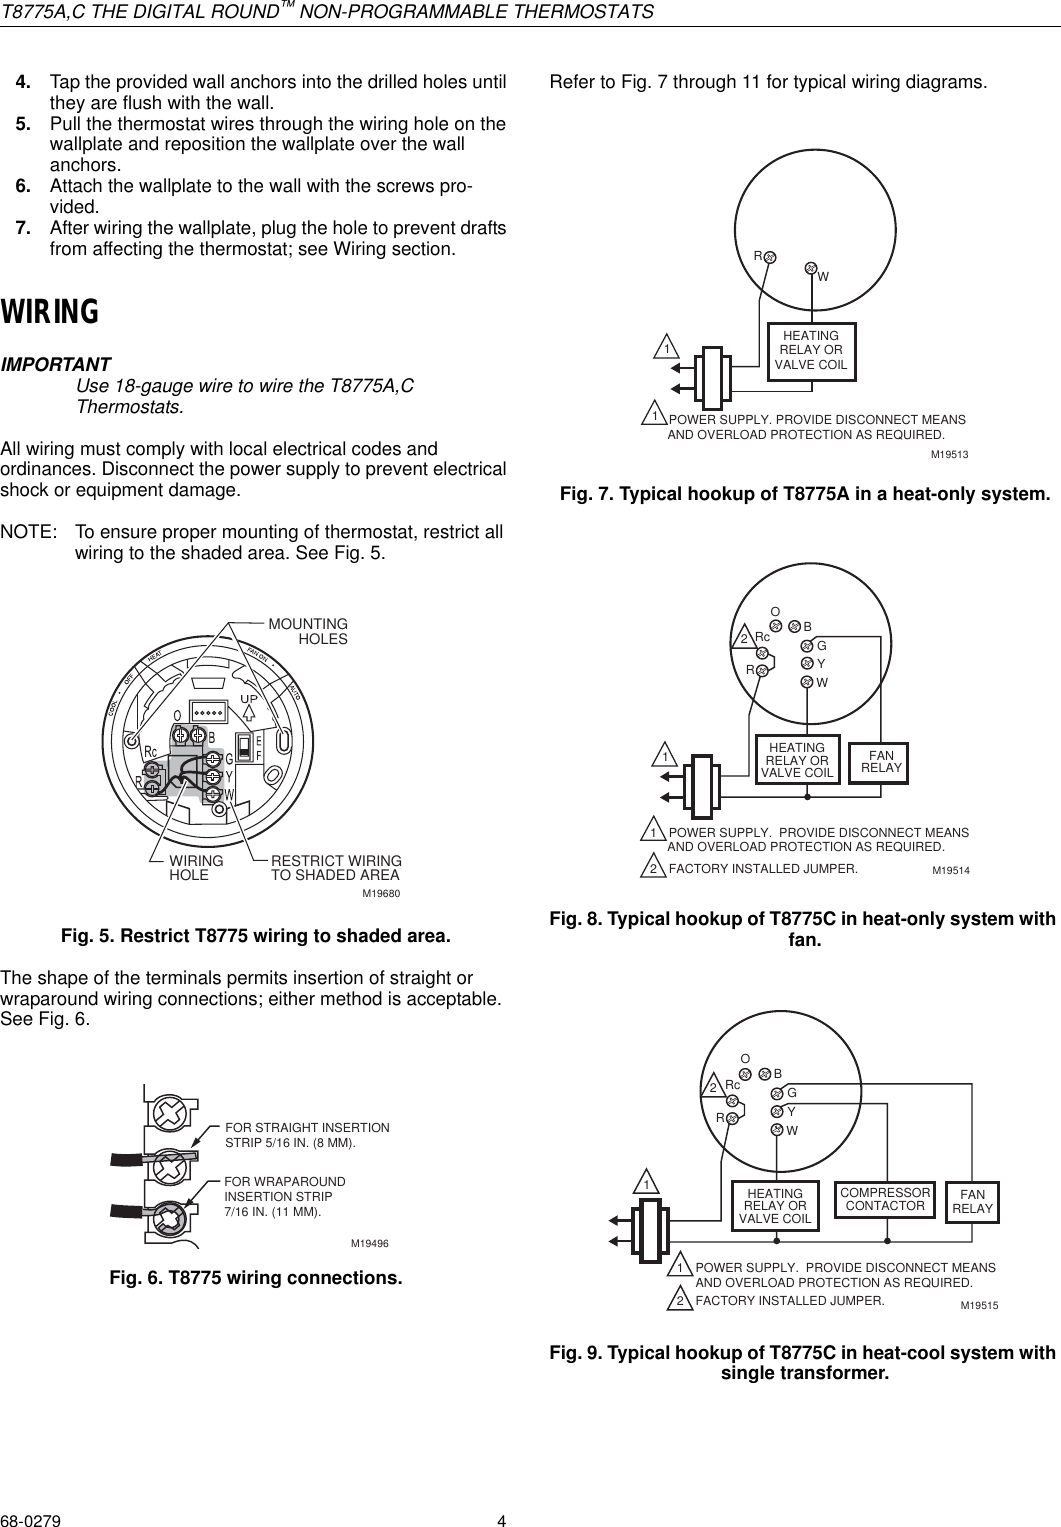 Honeywell Thermostat T8775a Users Manual 68 0279 Typical Wiring Page 4 Of 8